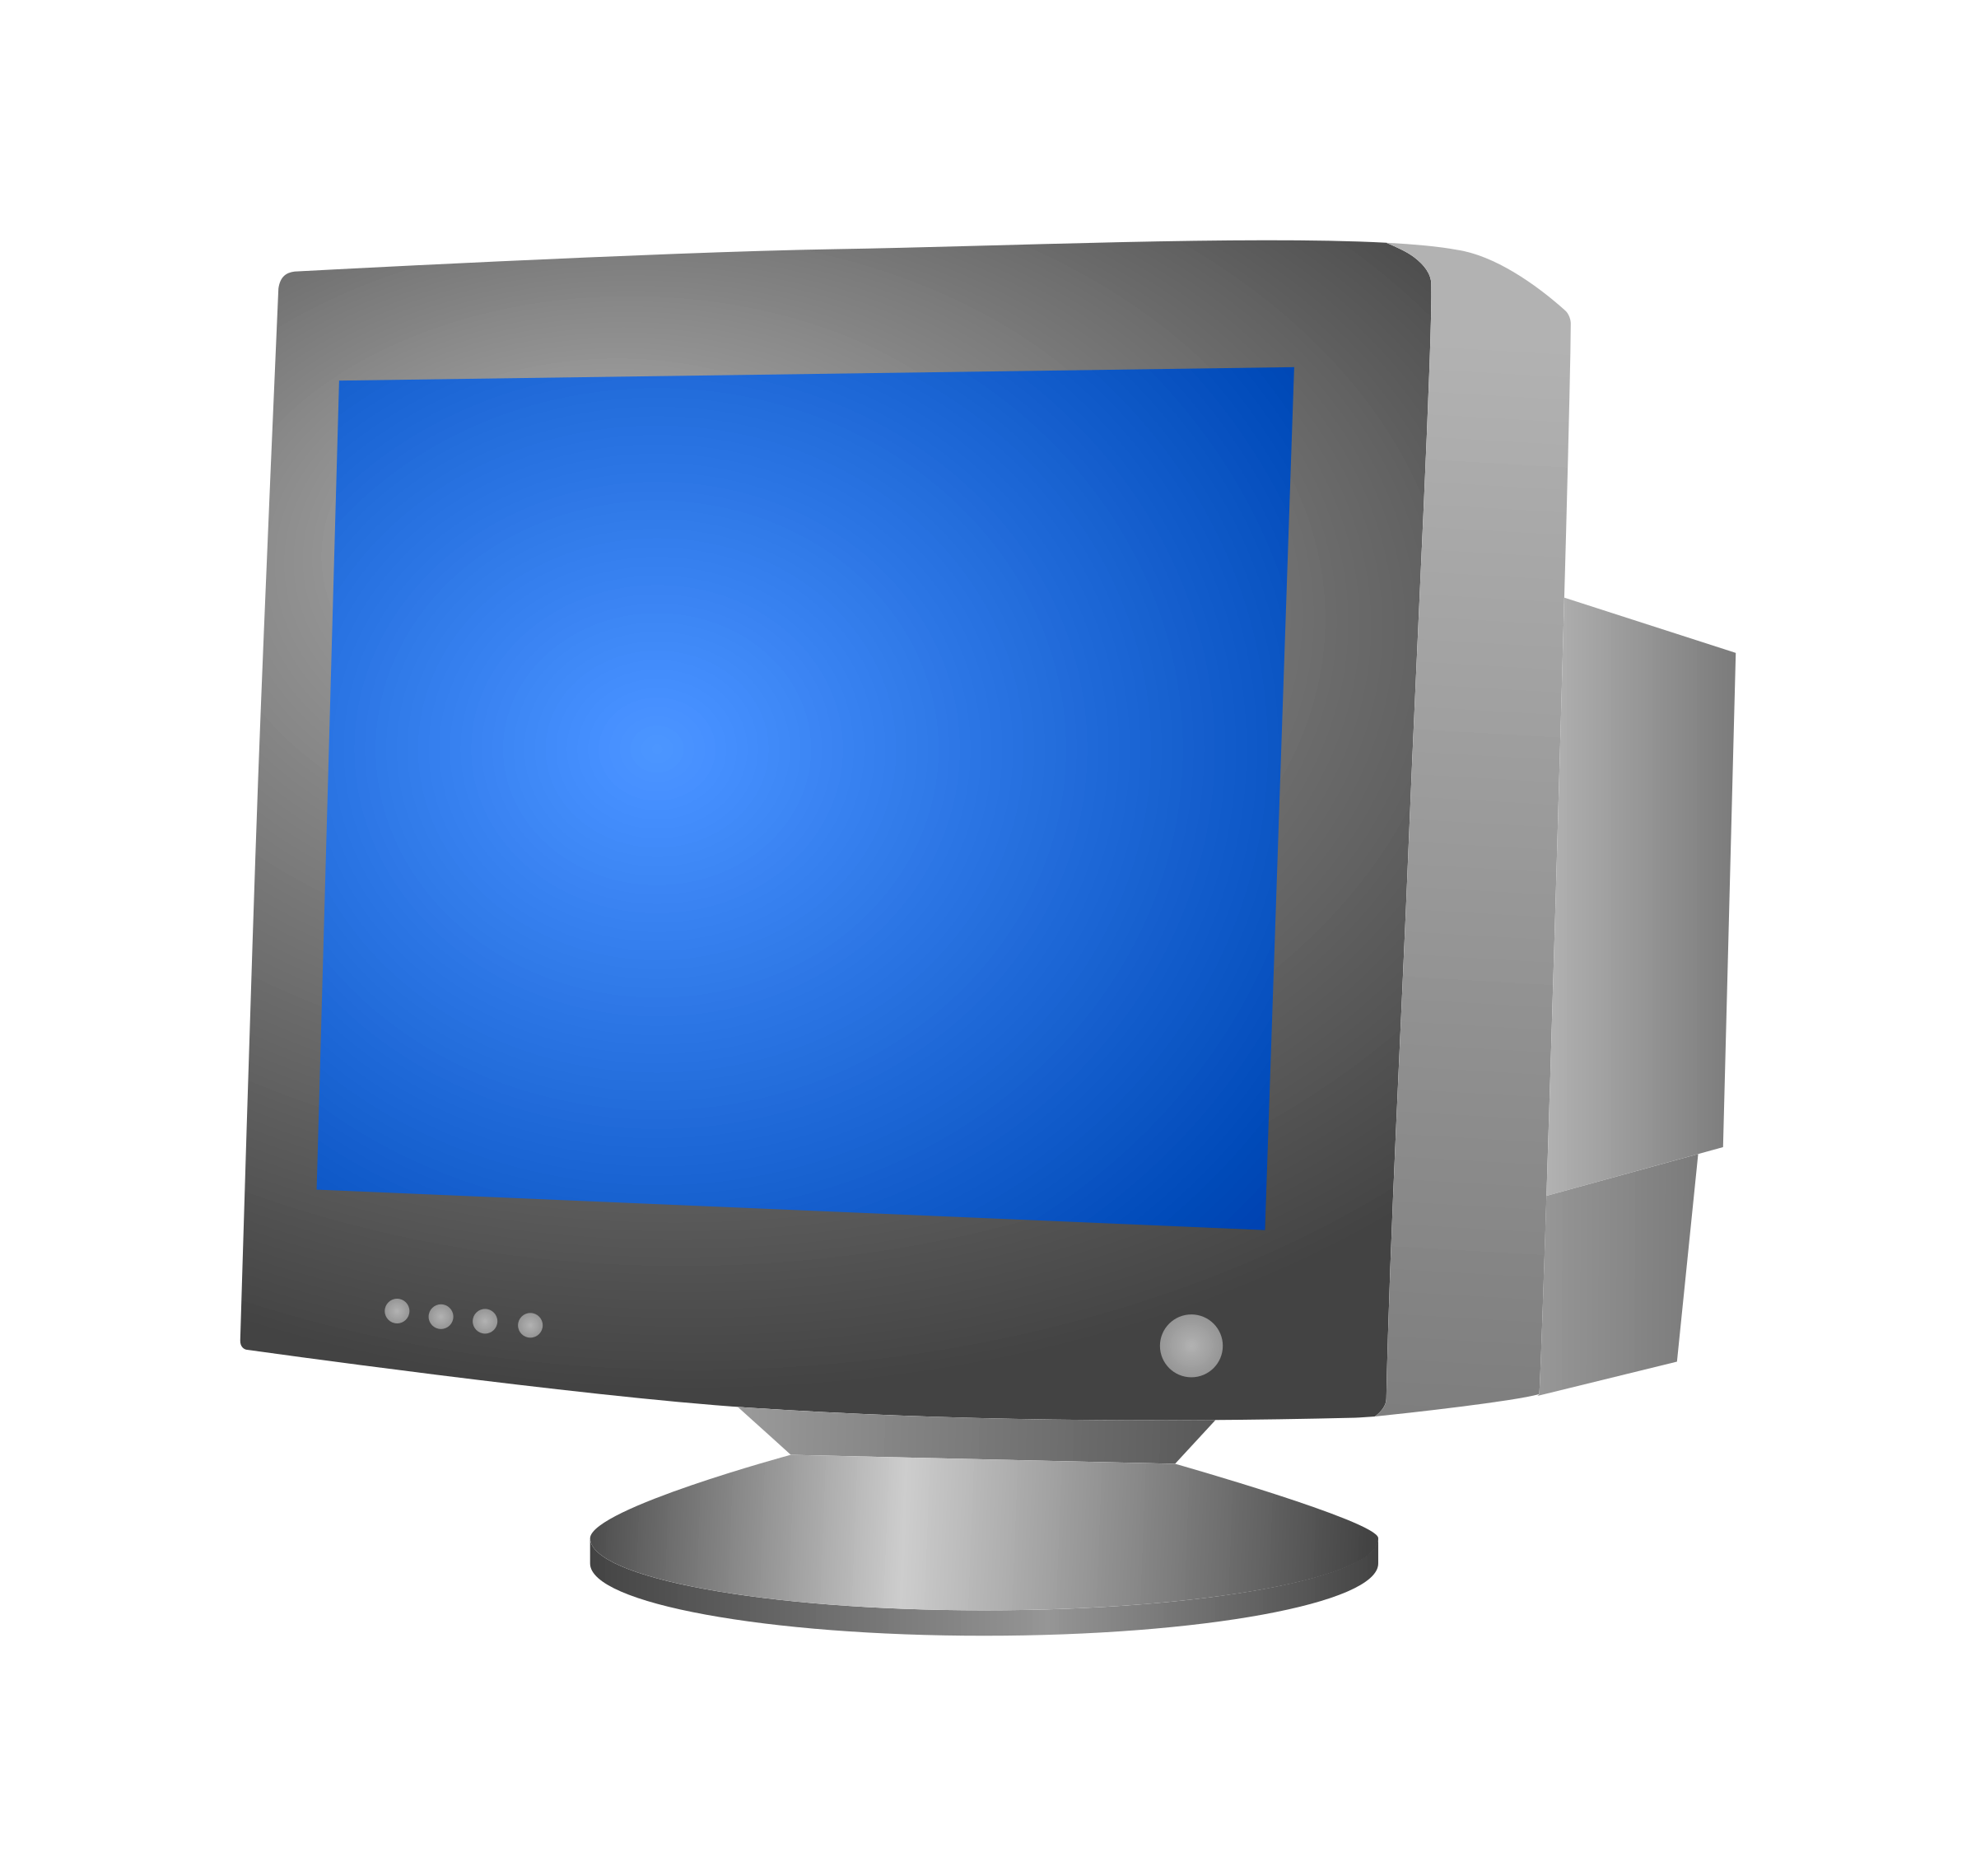 2400x2278 Free Stock Photo Of Computer Crt Monitor Vector Clipart